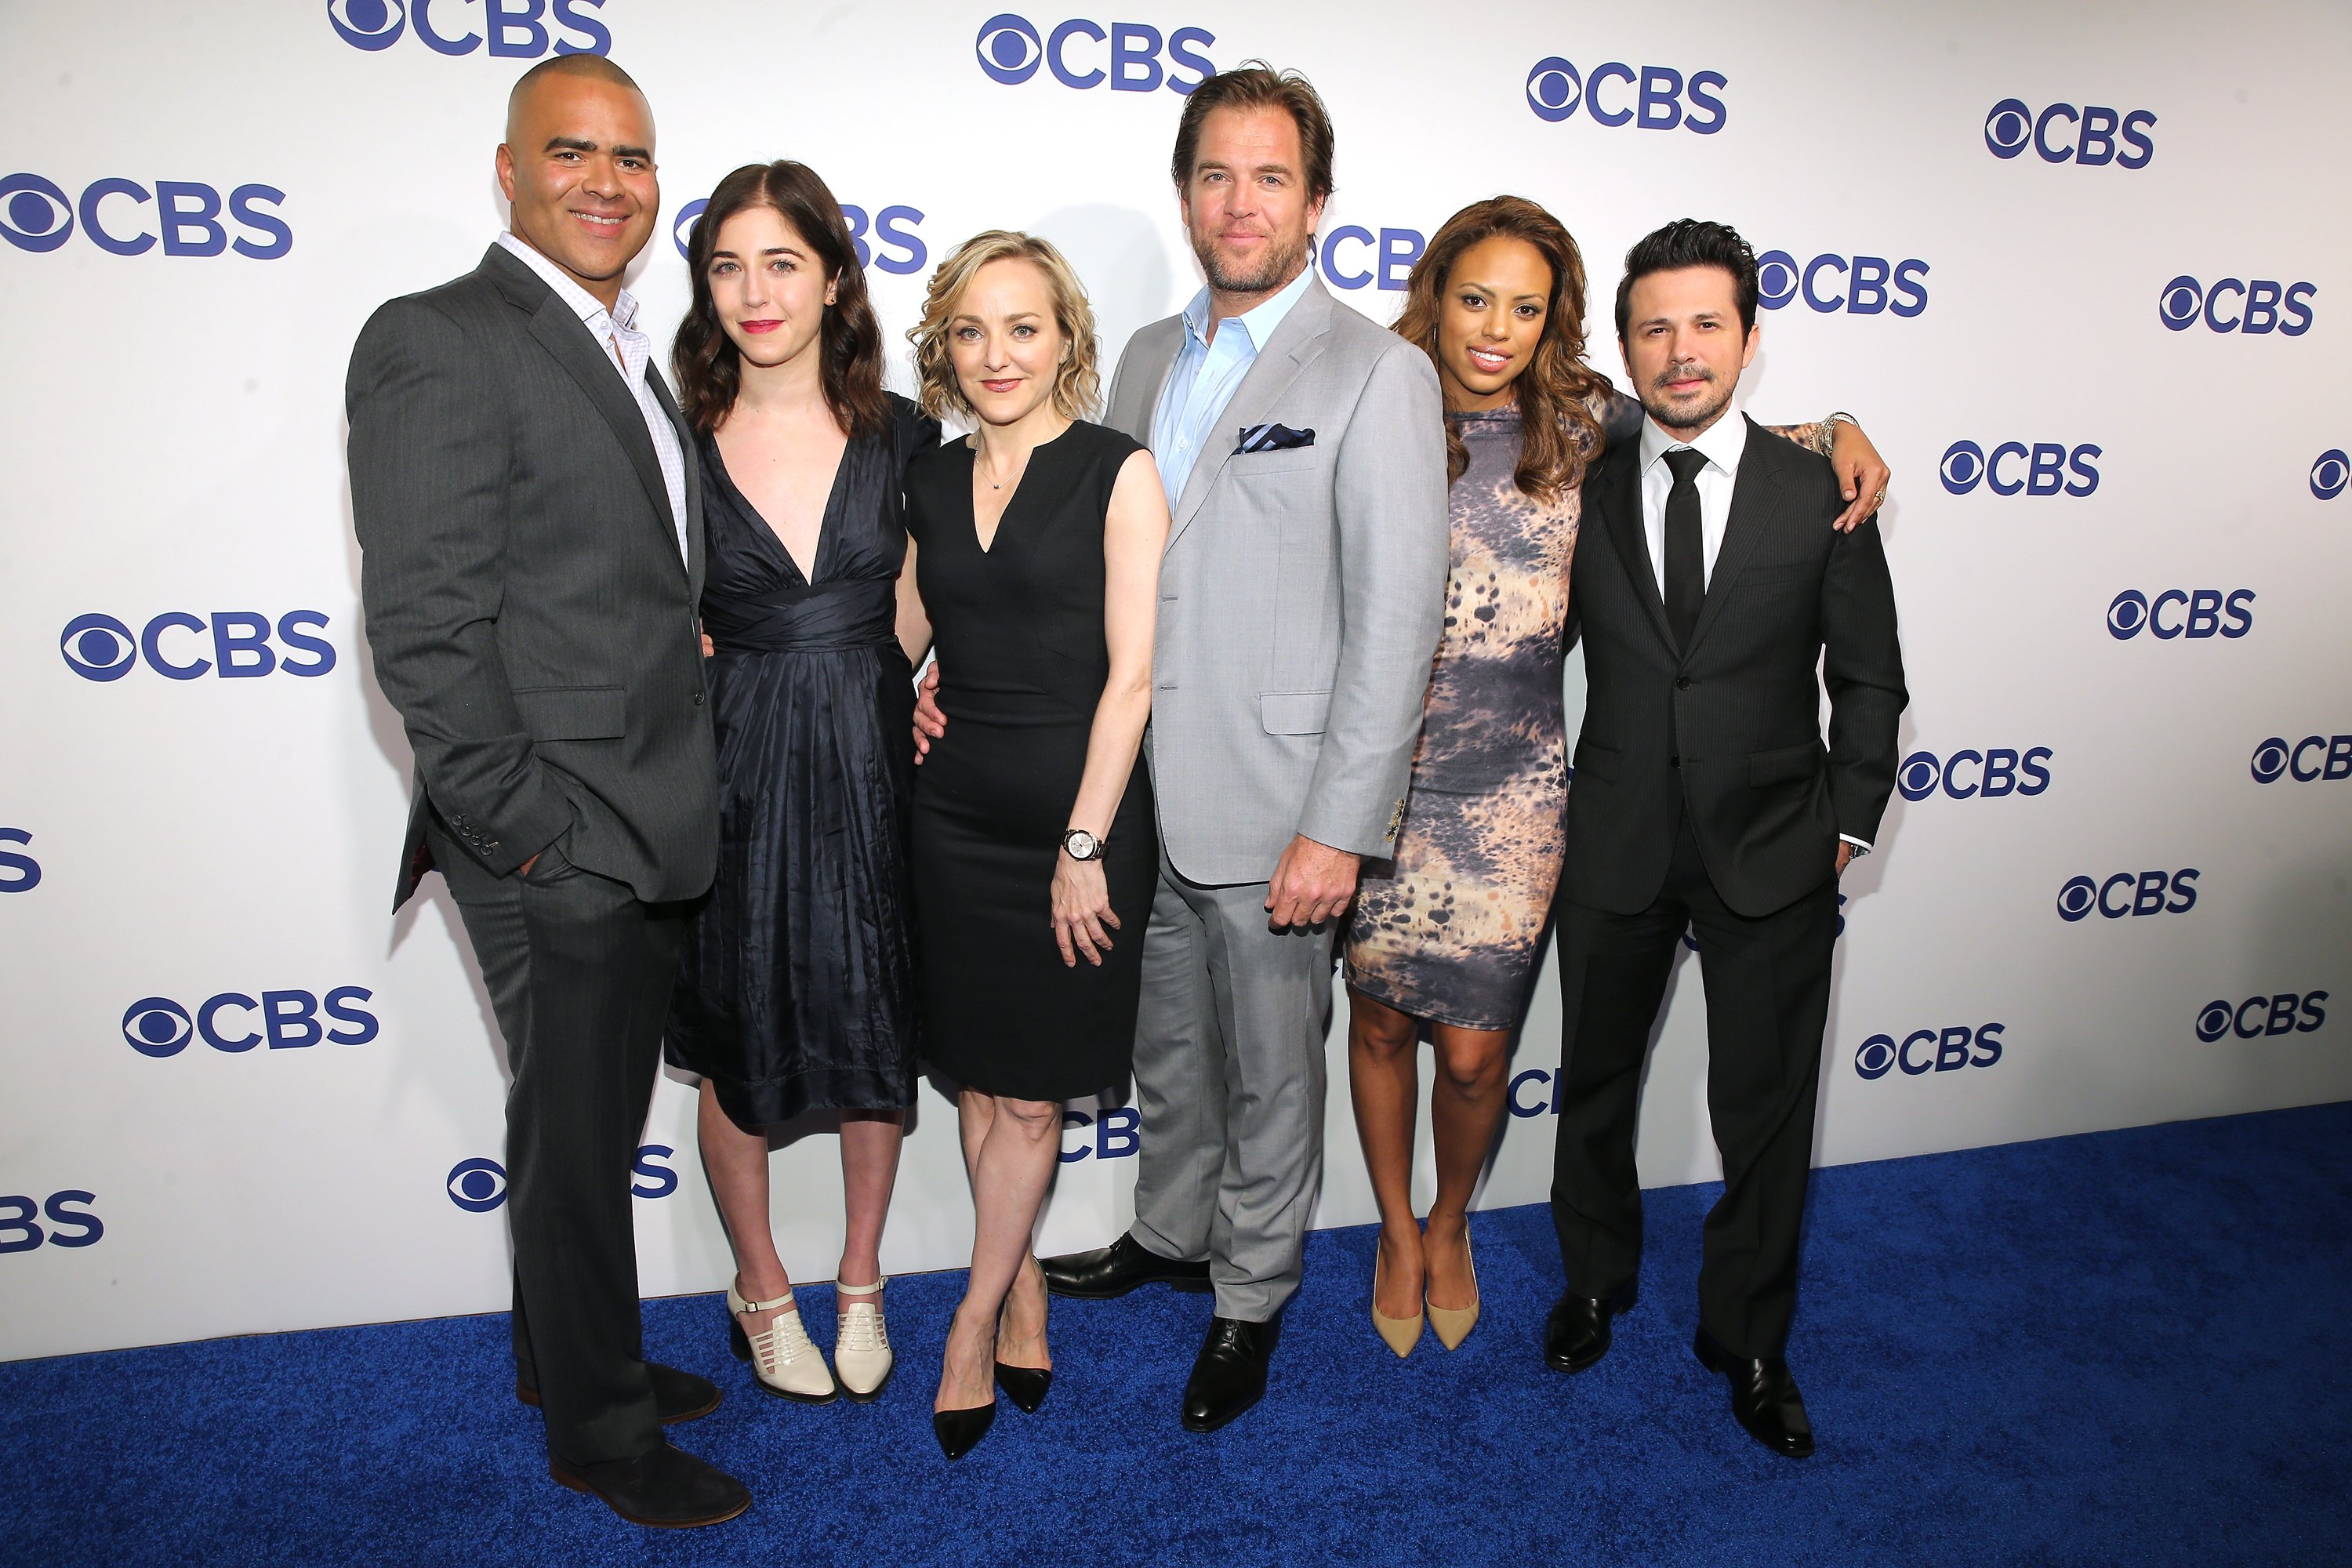 Cast of Bull: Chris Jackson, Annabelle Attanasio, Geneva Carr, Michael Weatherly, Jamie Lee Kirchner, and Freddy Rodriguez attend the 2016 CBS Upfront at The Plaza on May 18, 2016, in New York City. | Source: Getty Images.